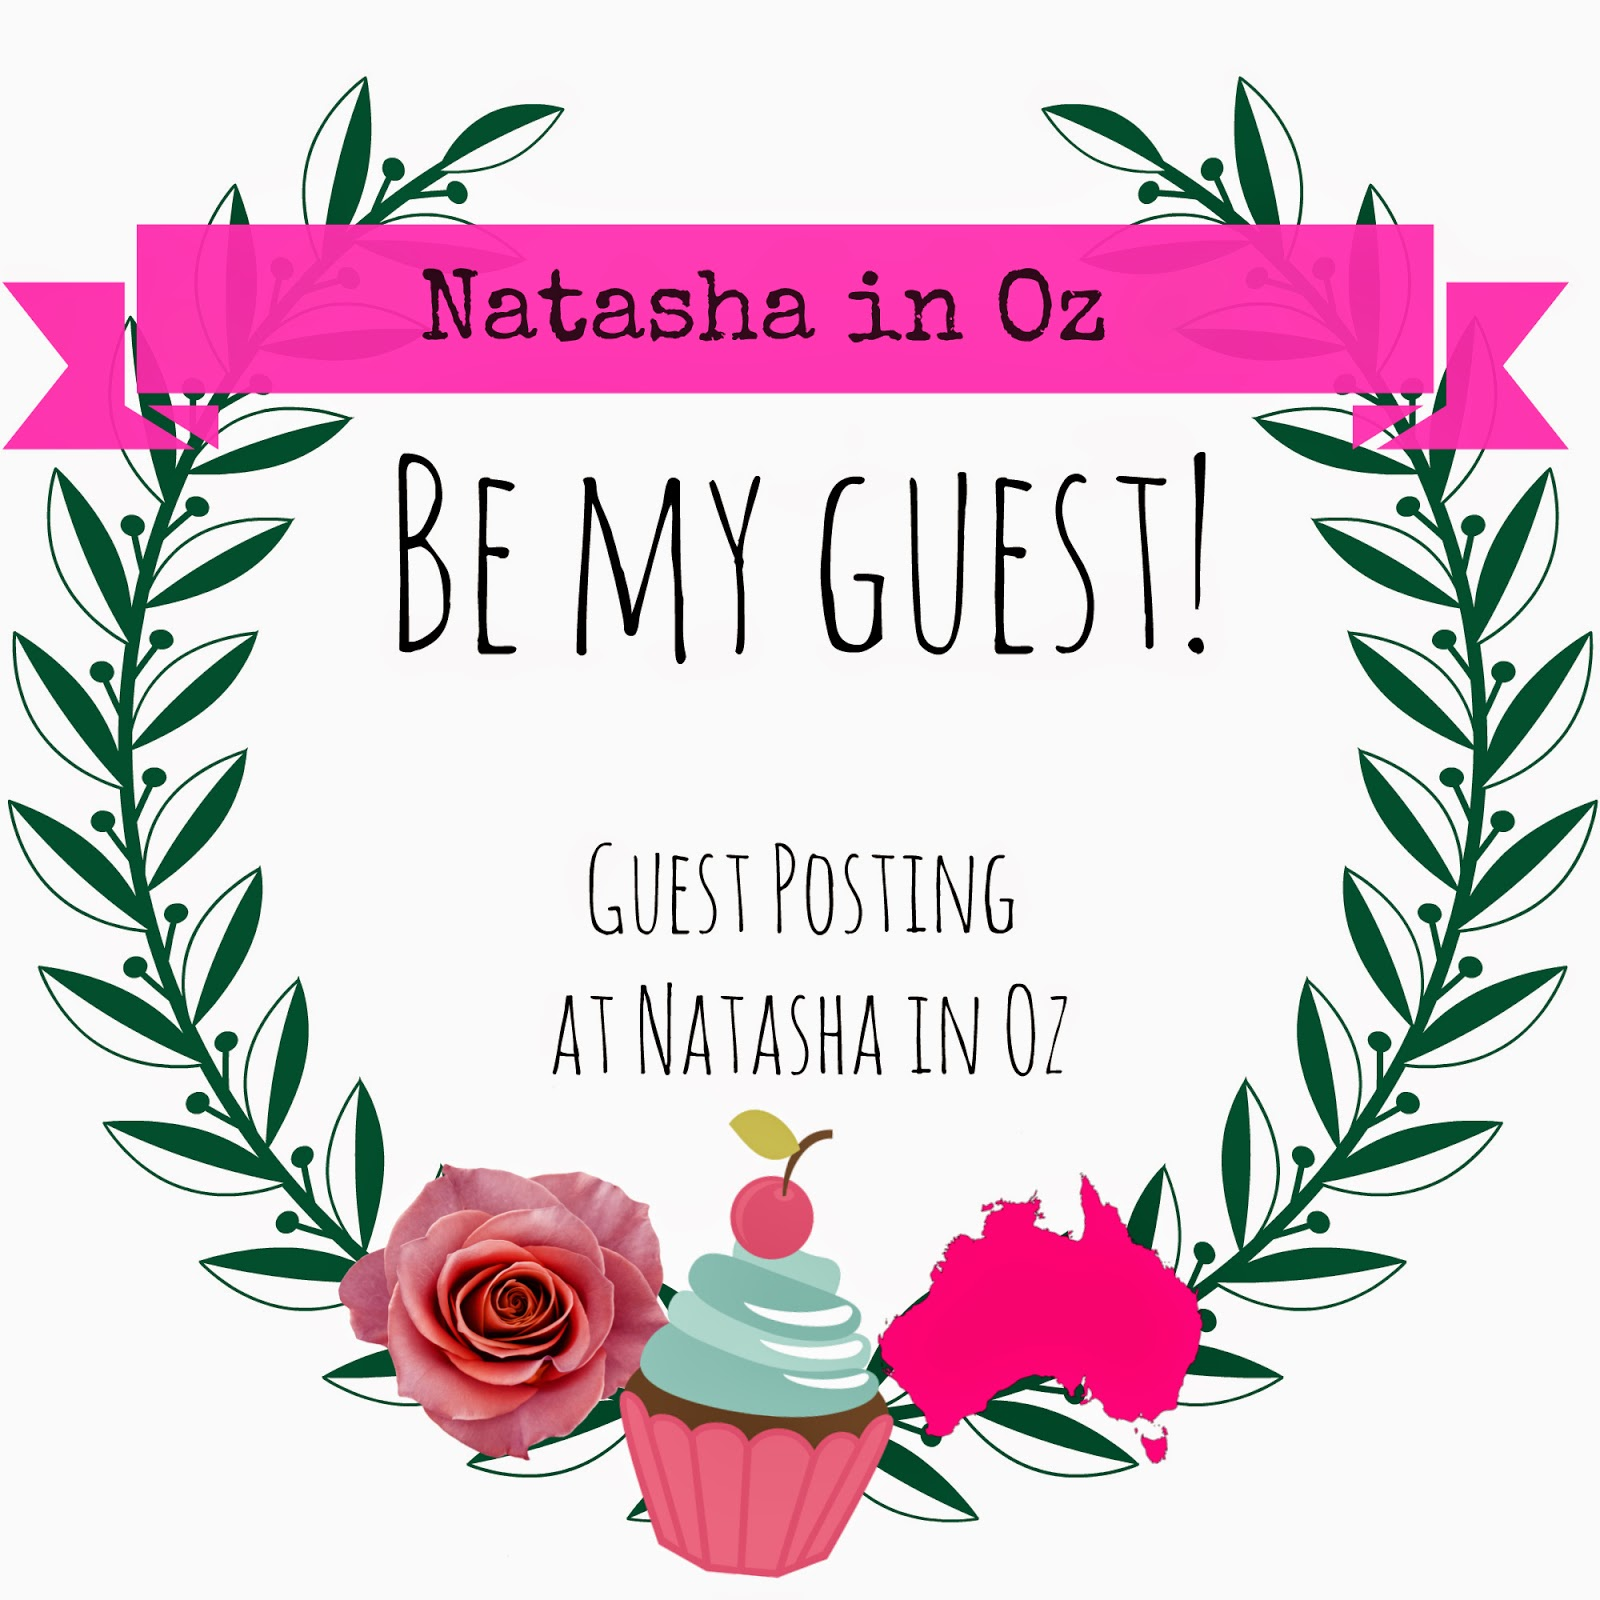 Guest Posting @ Natasha in Oz